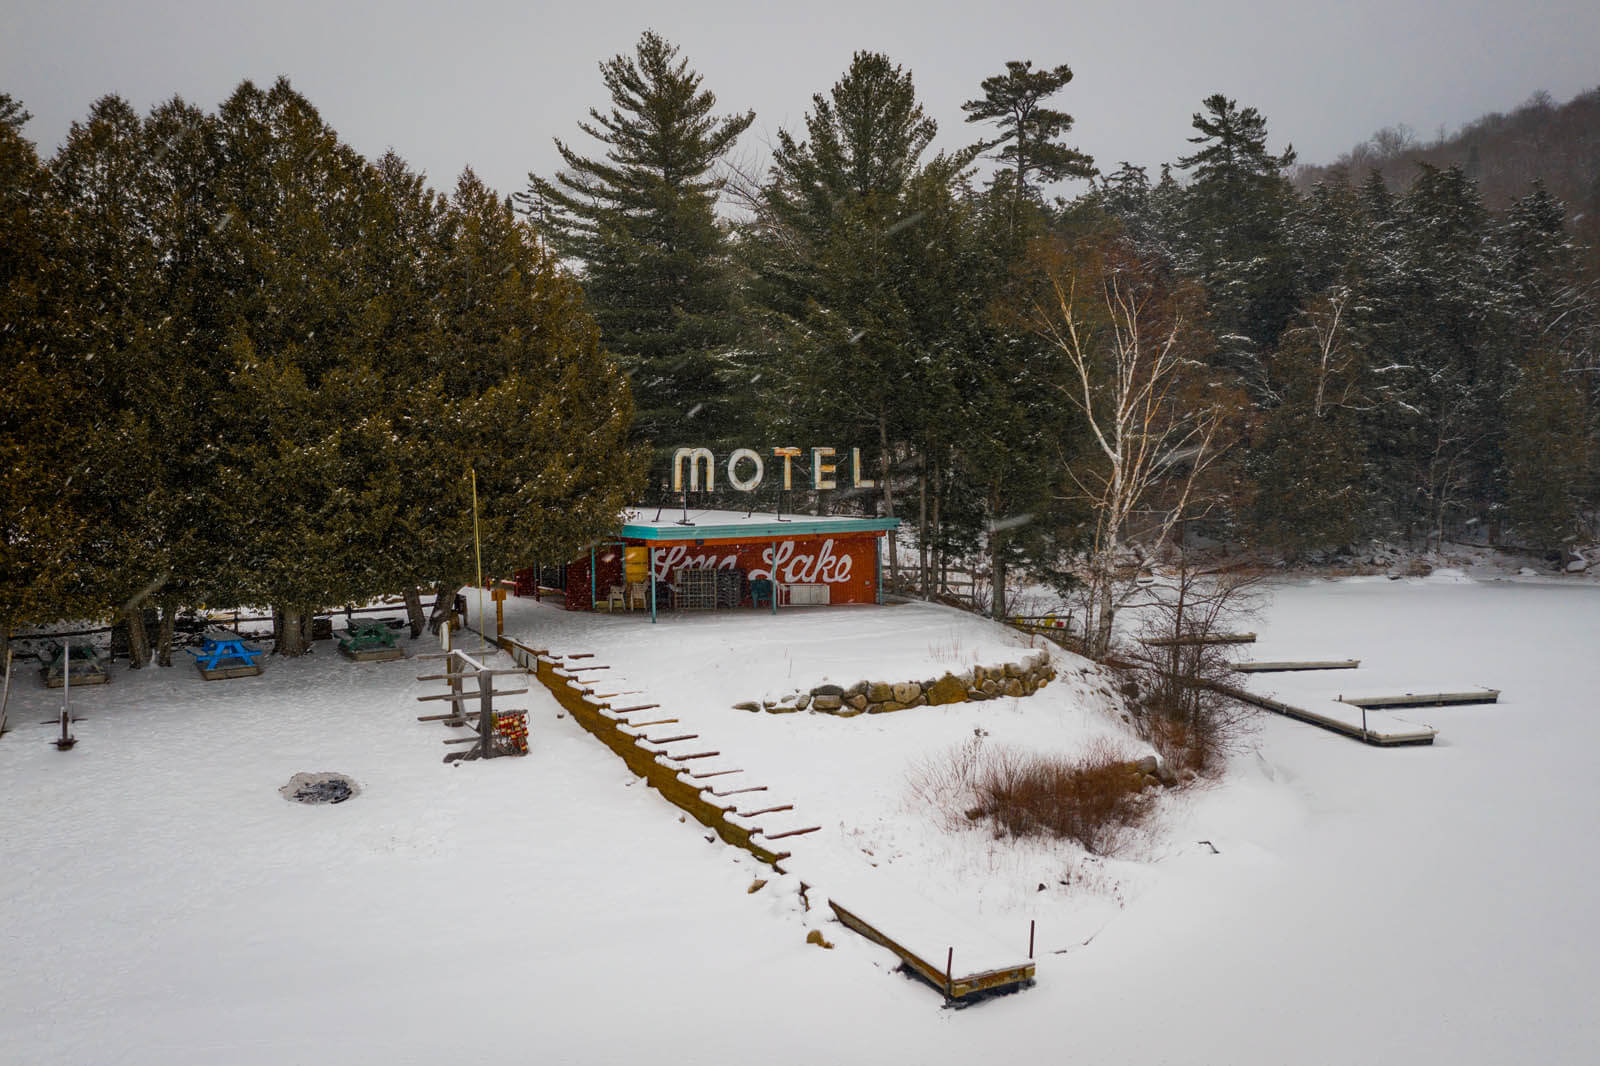 Long Lake Motel in the Adirondacks New York during a snow storm